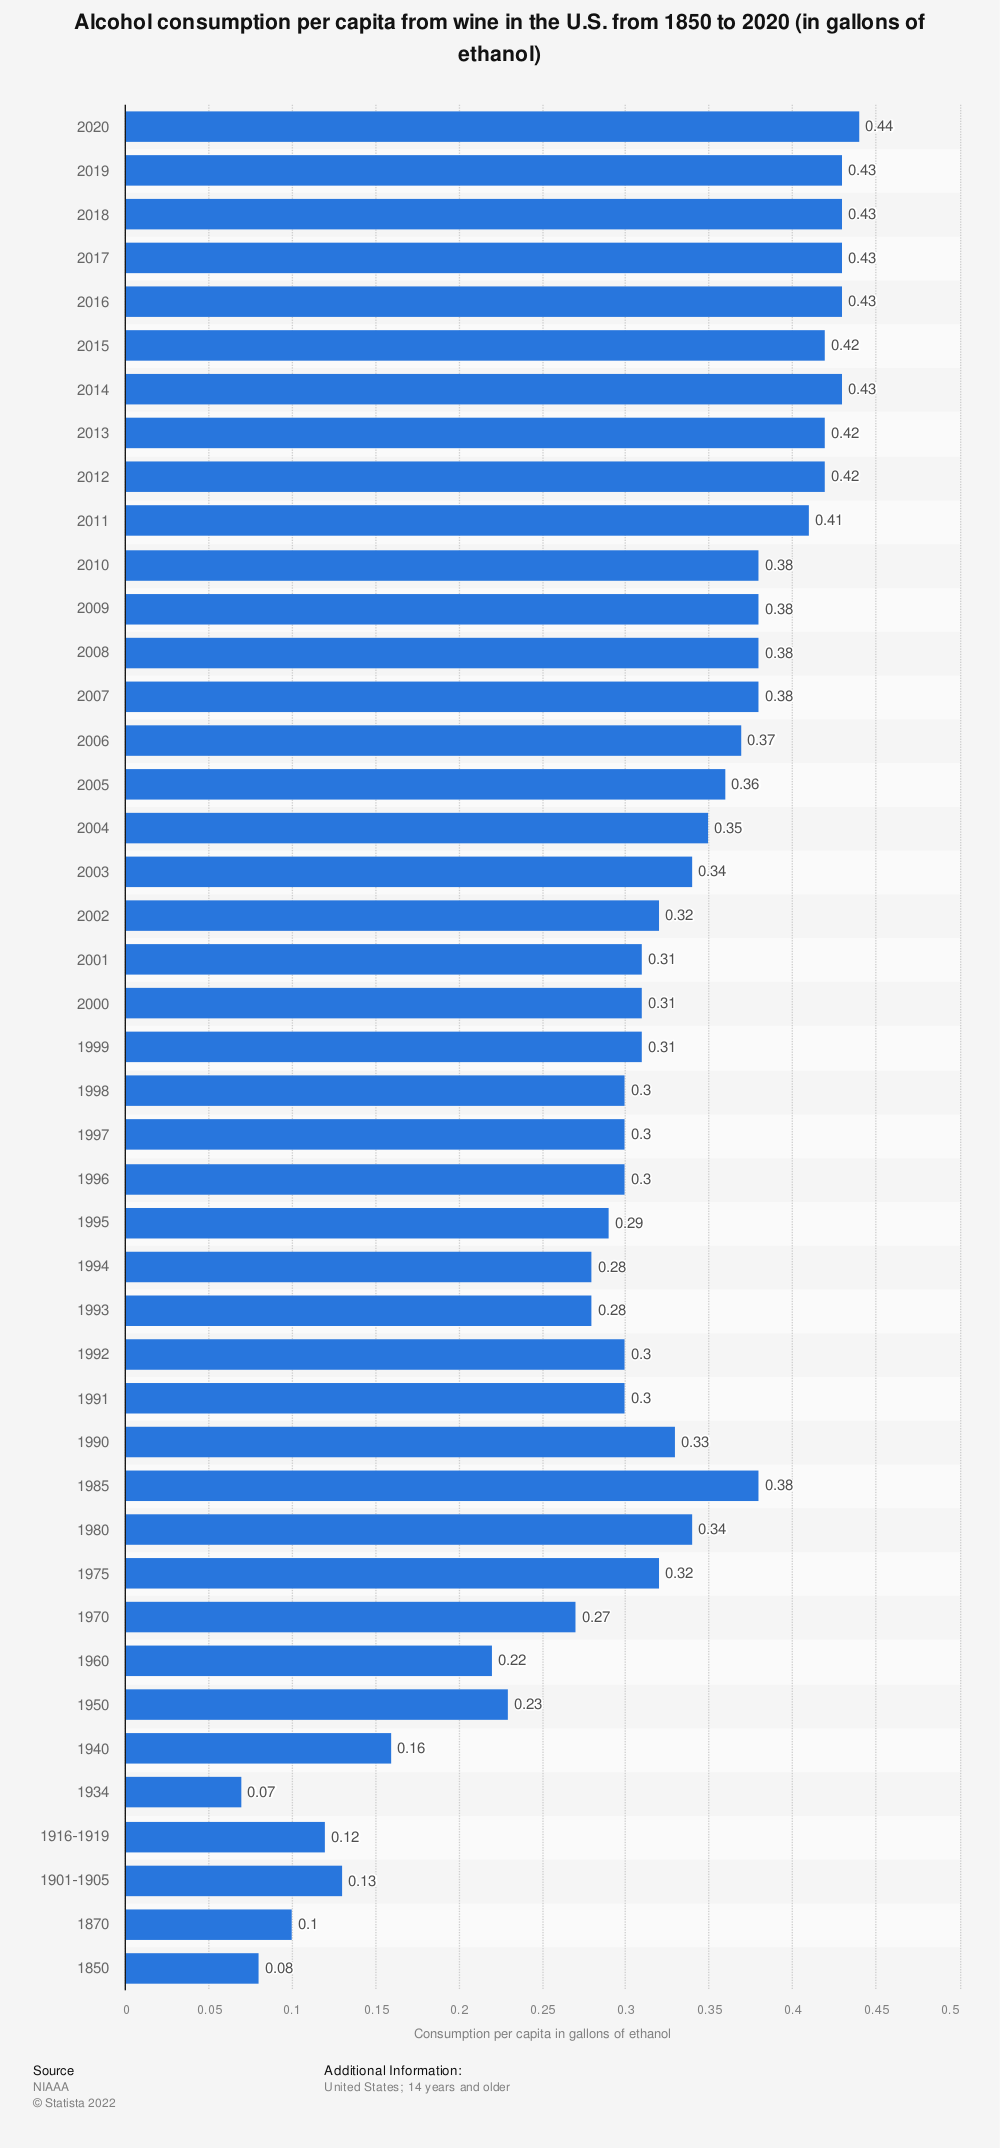 Statistic: Alcohol consumption per capita from wine in the U.S. from 1850 to 2016 (in gallons of ethanol) | Statista